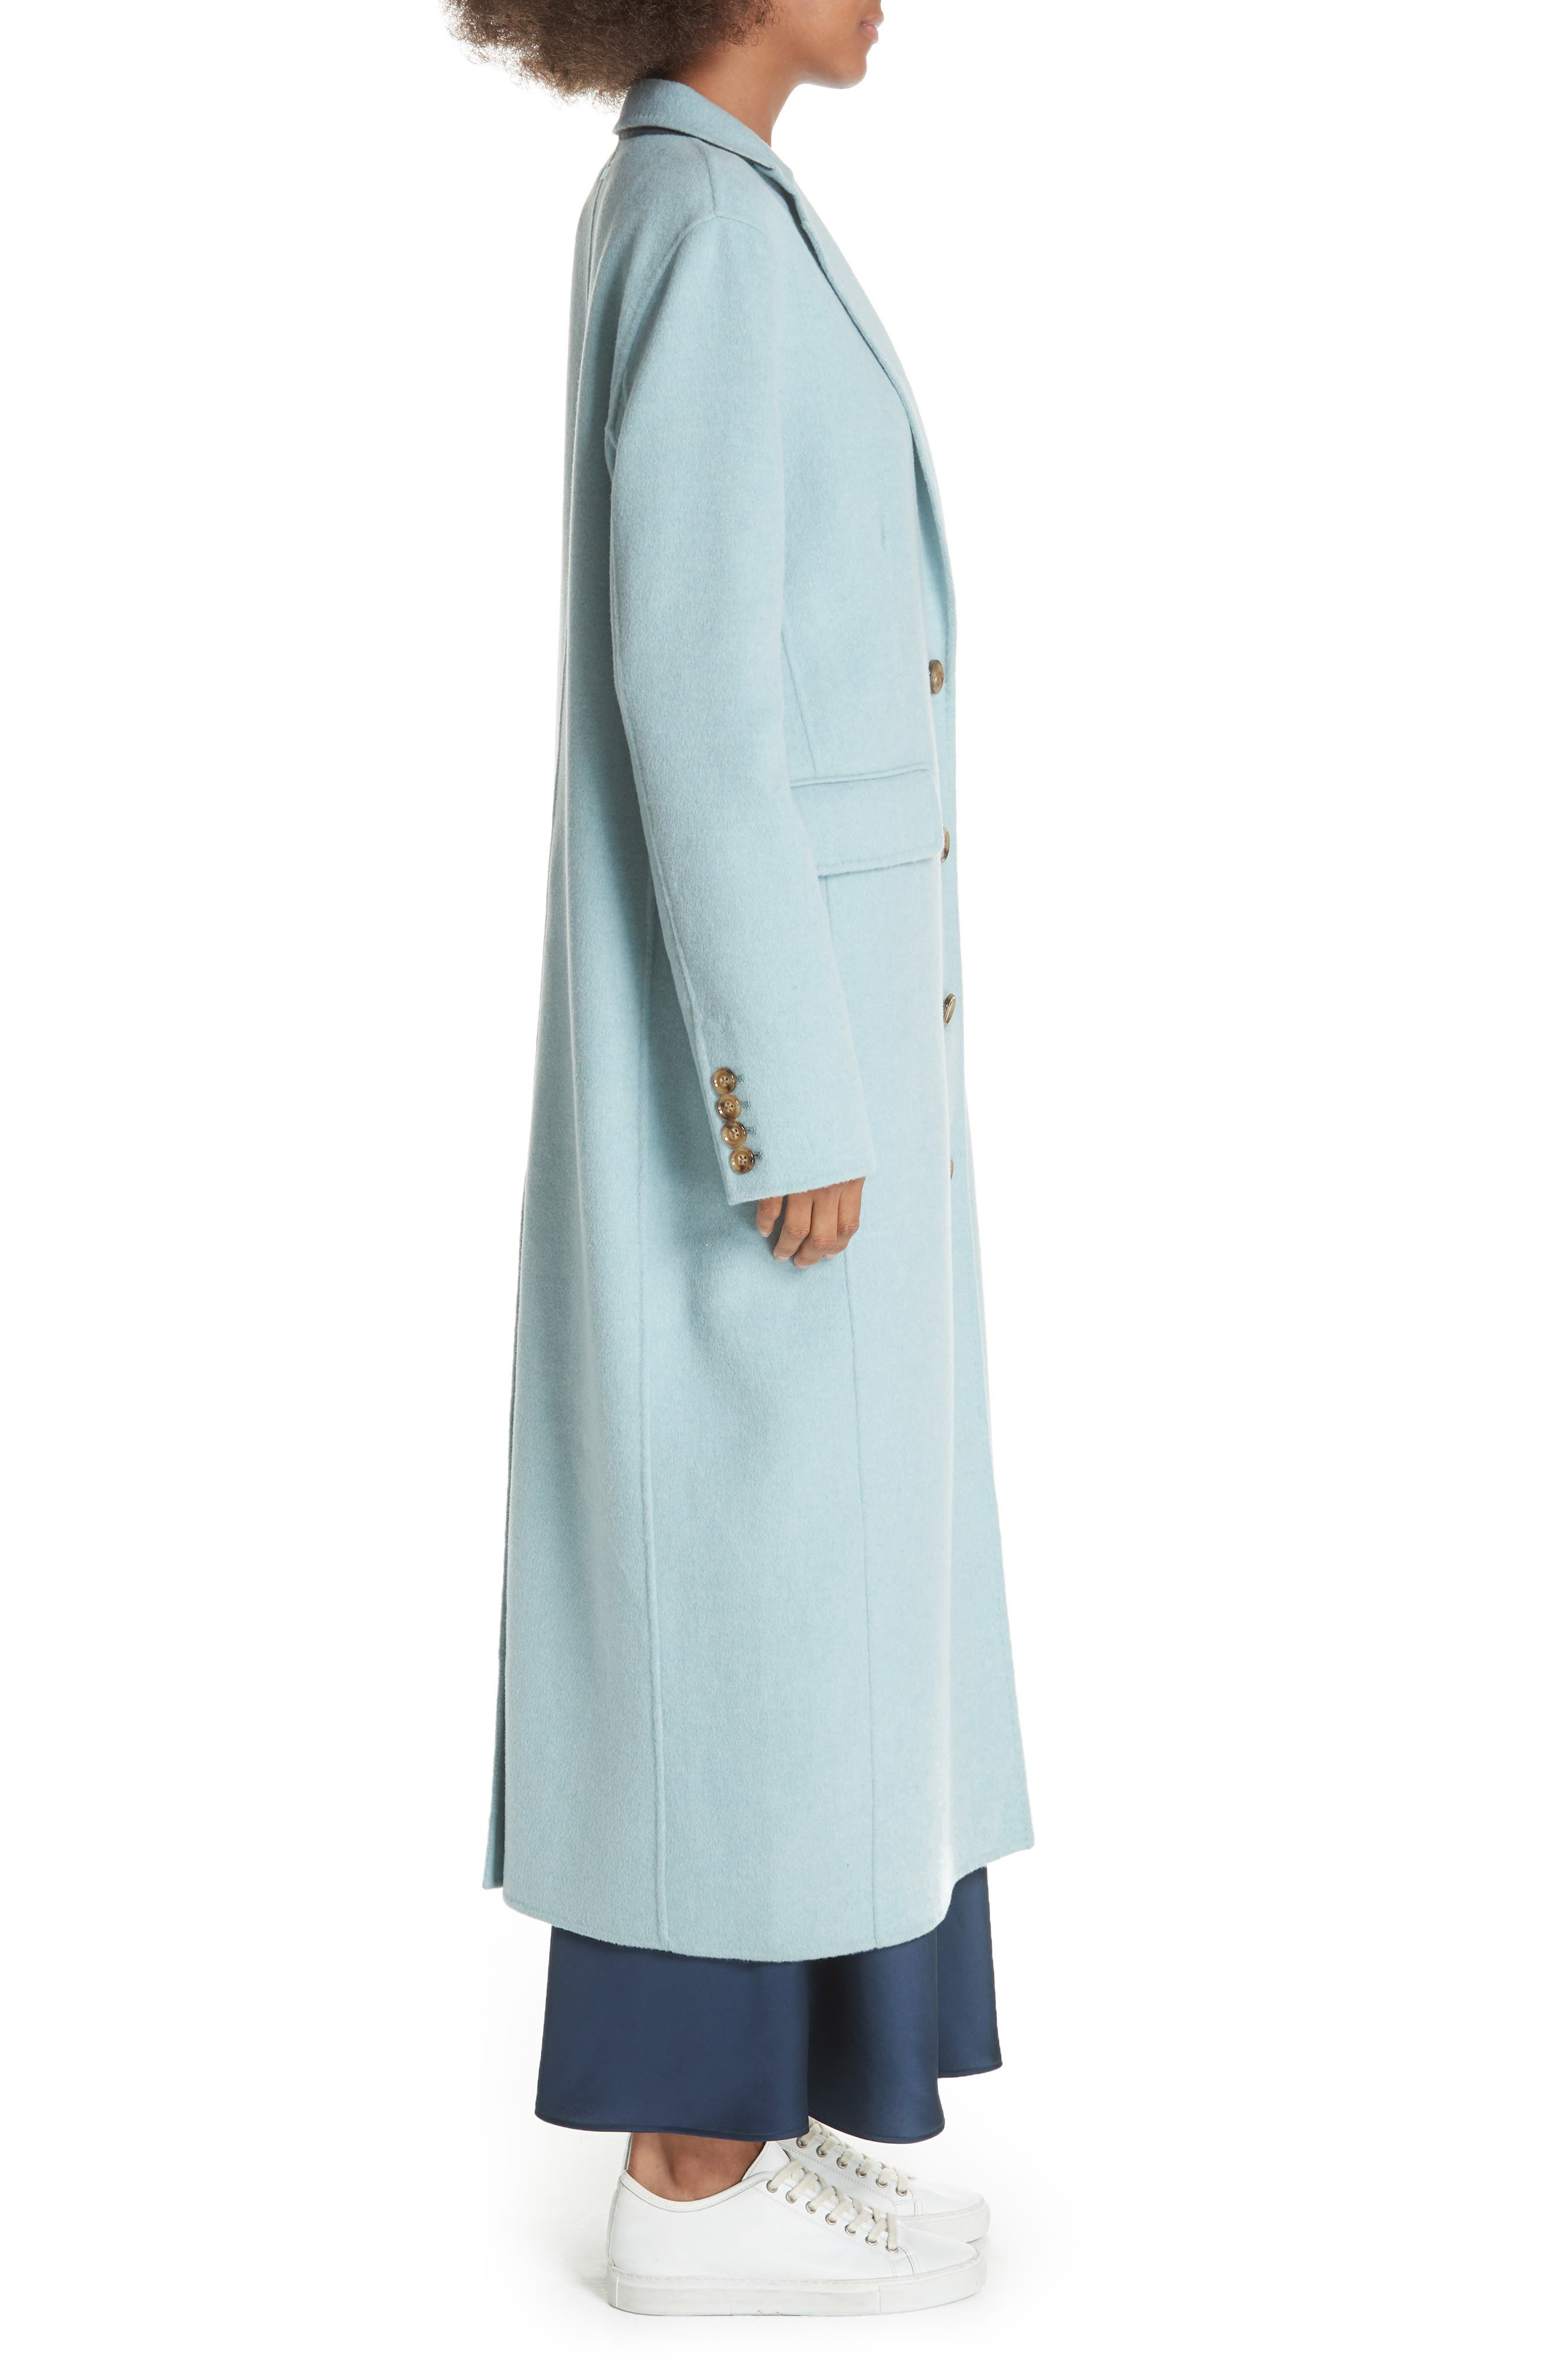 ELIZABETH AND JAMES,                             Russell Wool Blend Coat,                             Alternate thumbnail 3, color,                             400